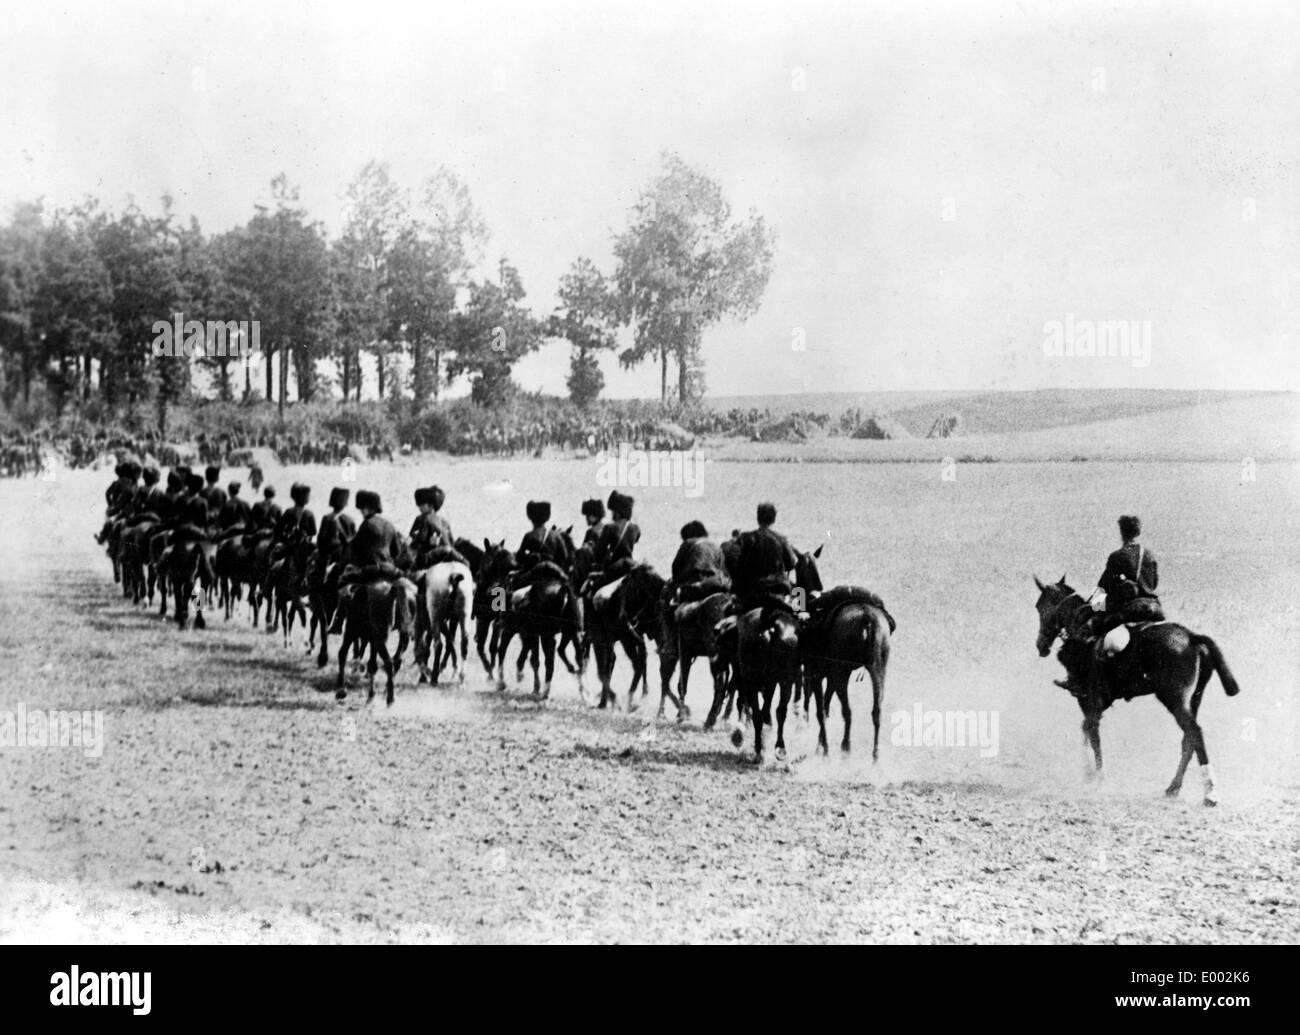 Belgain cavalry unit withdraws from action, 1914 - Stock Image